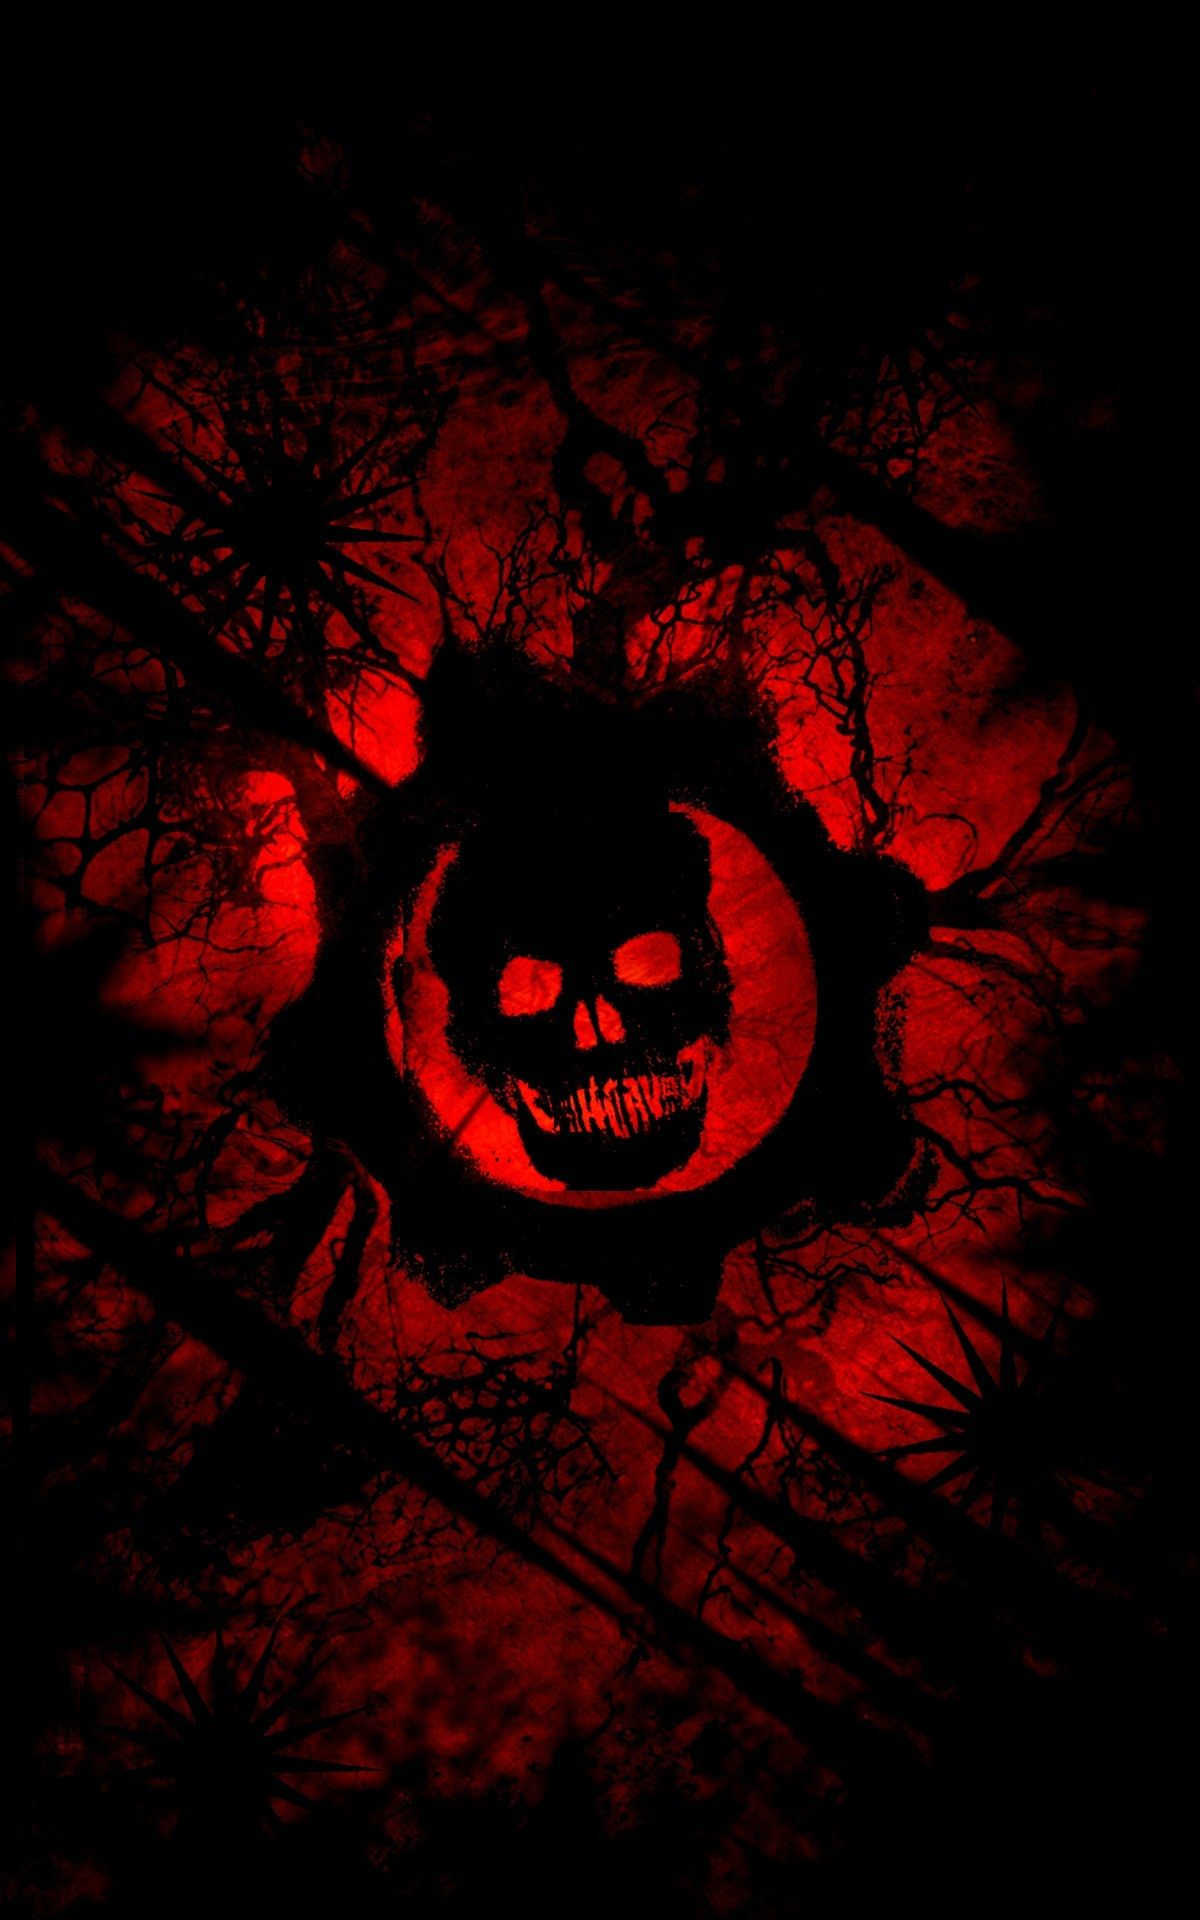 gears of war red wallpaper iphone - 2018 iphone wallpapers